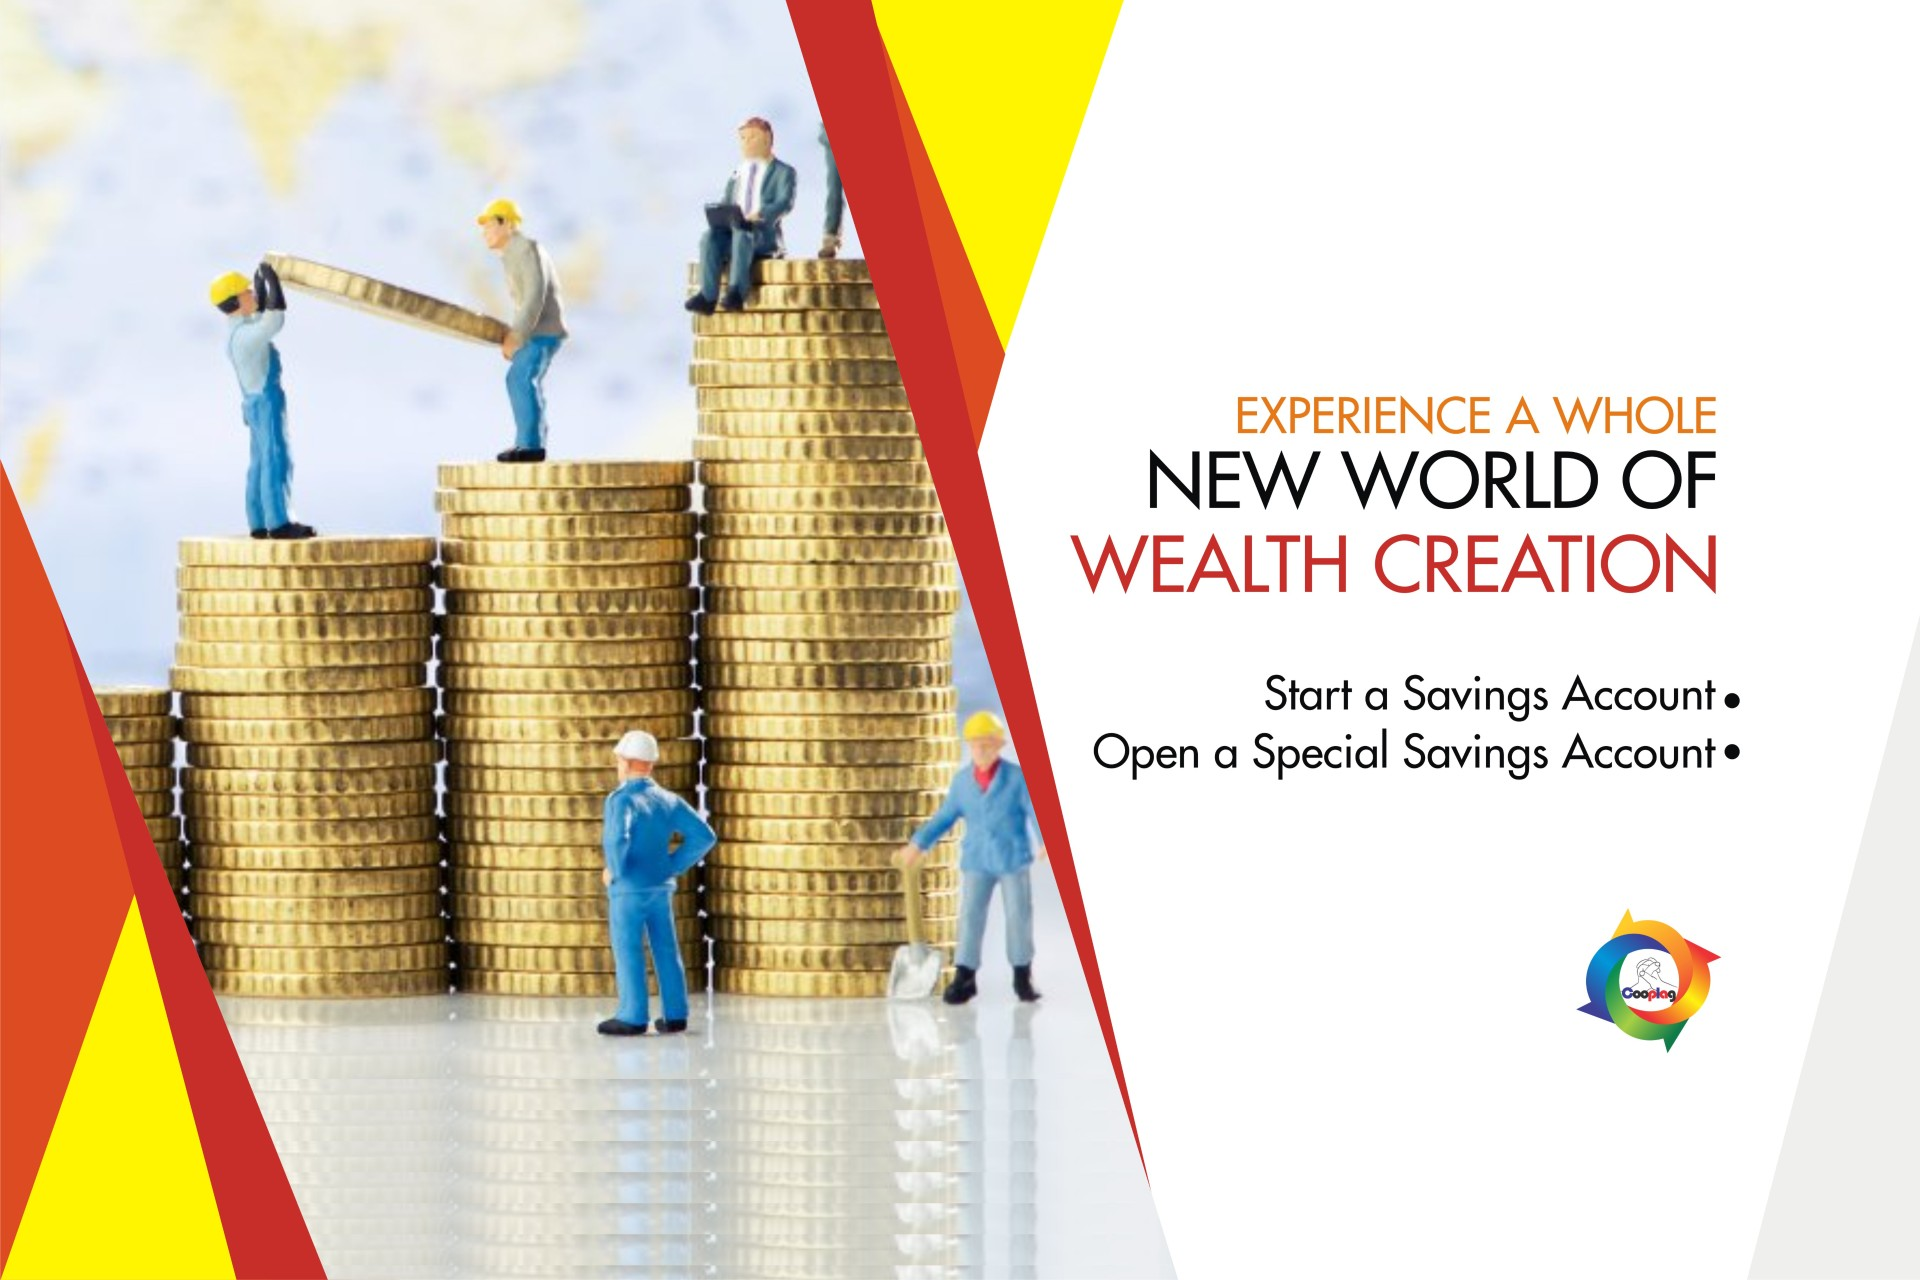 Experience A Whole New World Of Wealth Creation